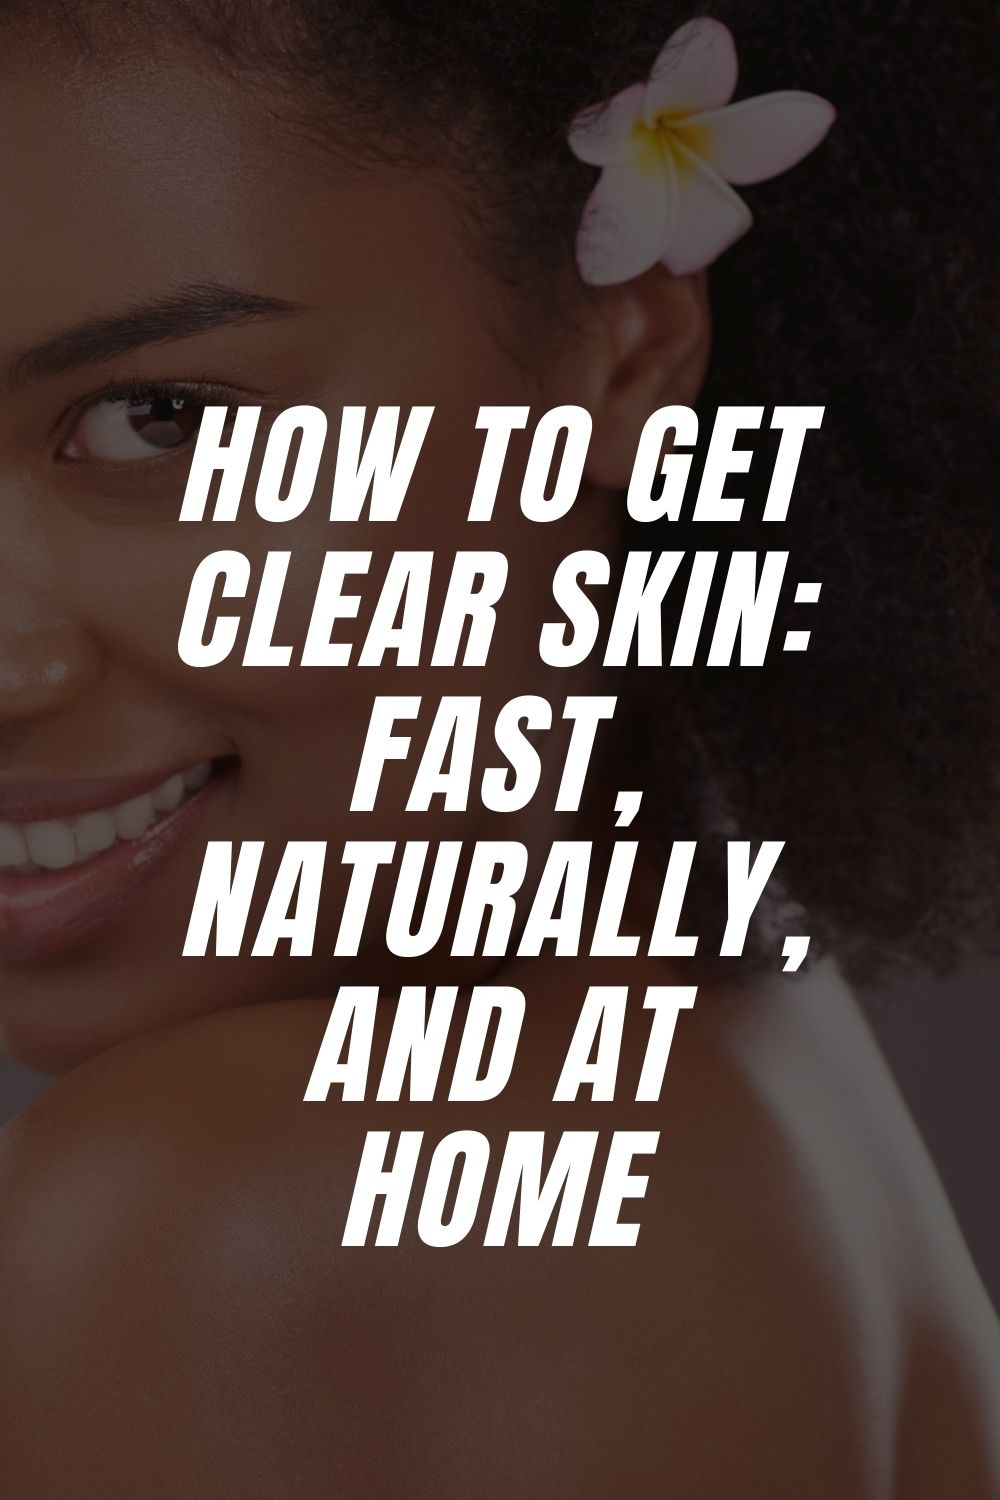 How To Get Clear Skin: Fast, Naturally, And At Home